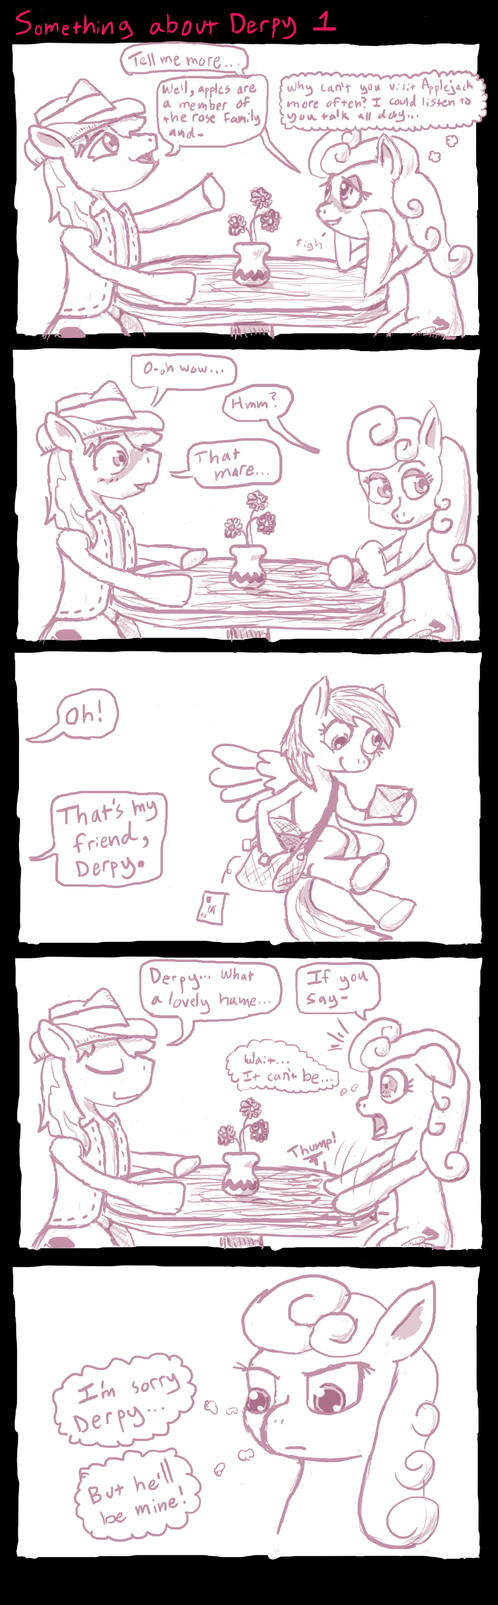 Something About Derpy 1 by FicFicPonyFic